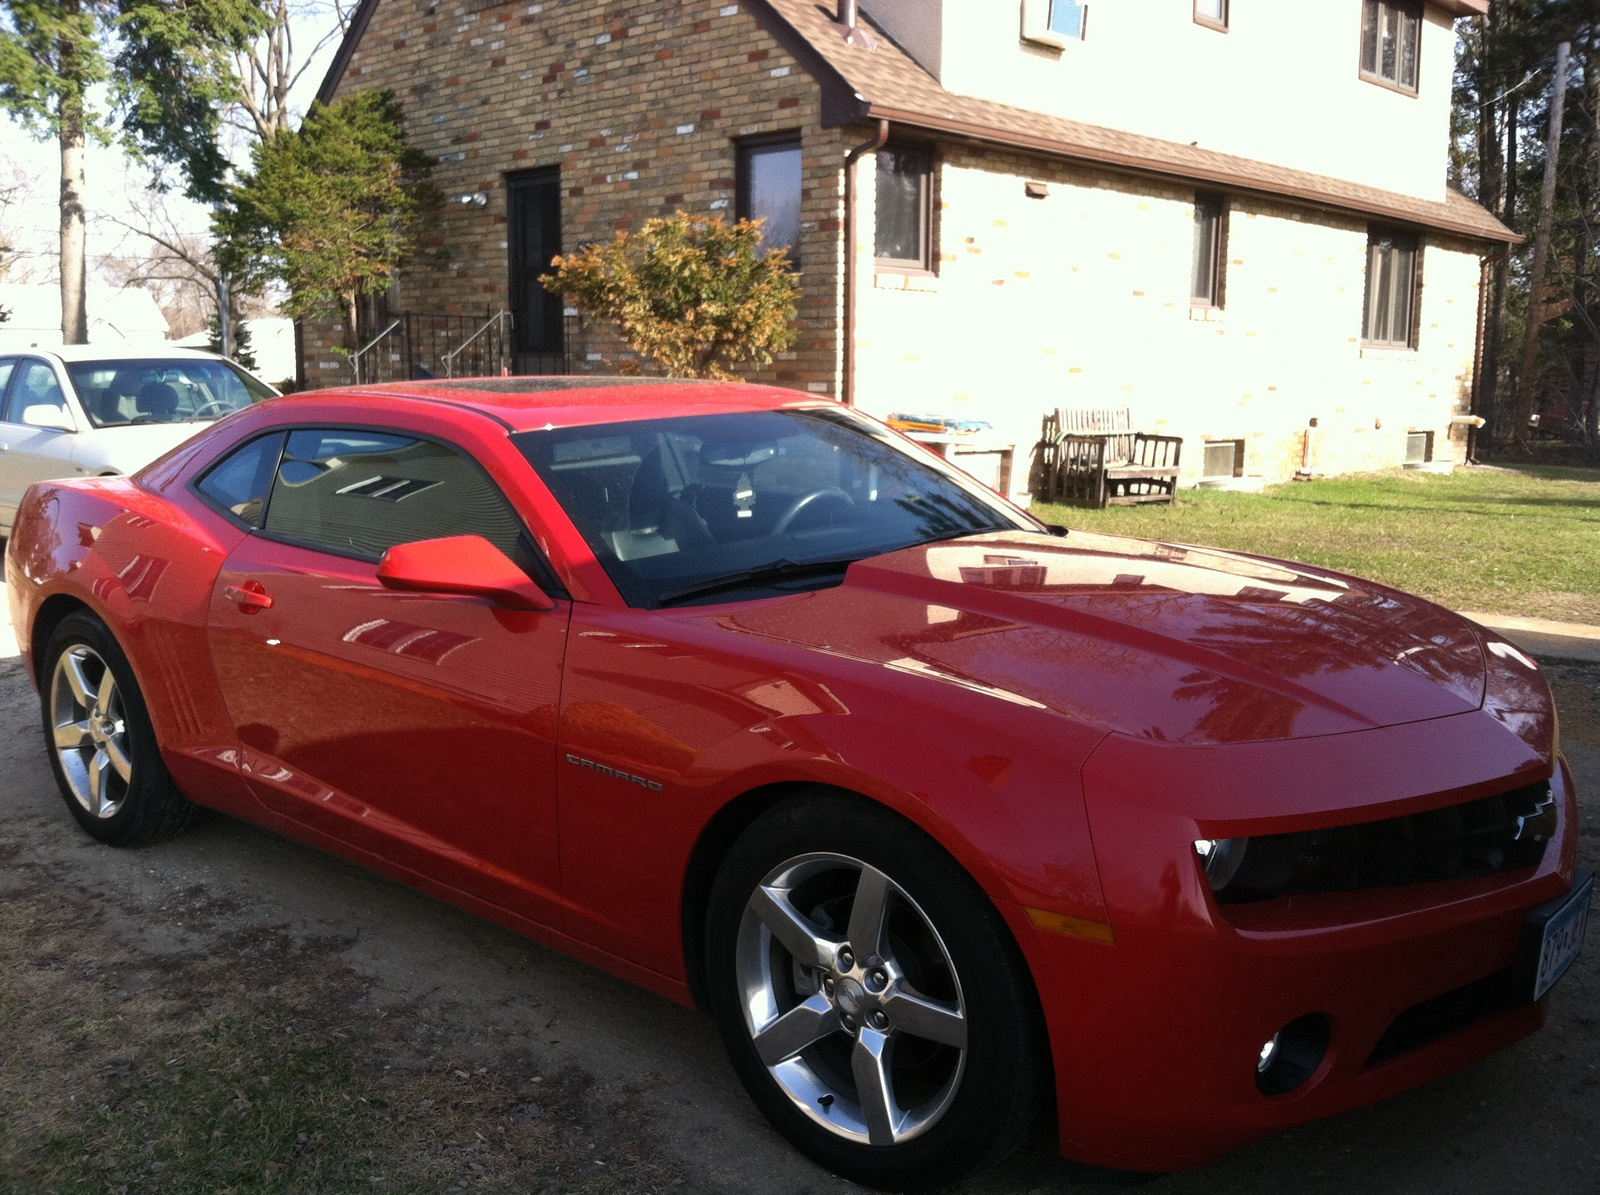 used chevrolet camaro for sale minneapolis mn cargurus. Black Bedroom Furniture Sets. Home Design Ideas